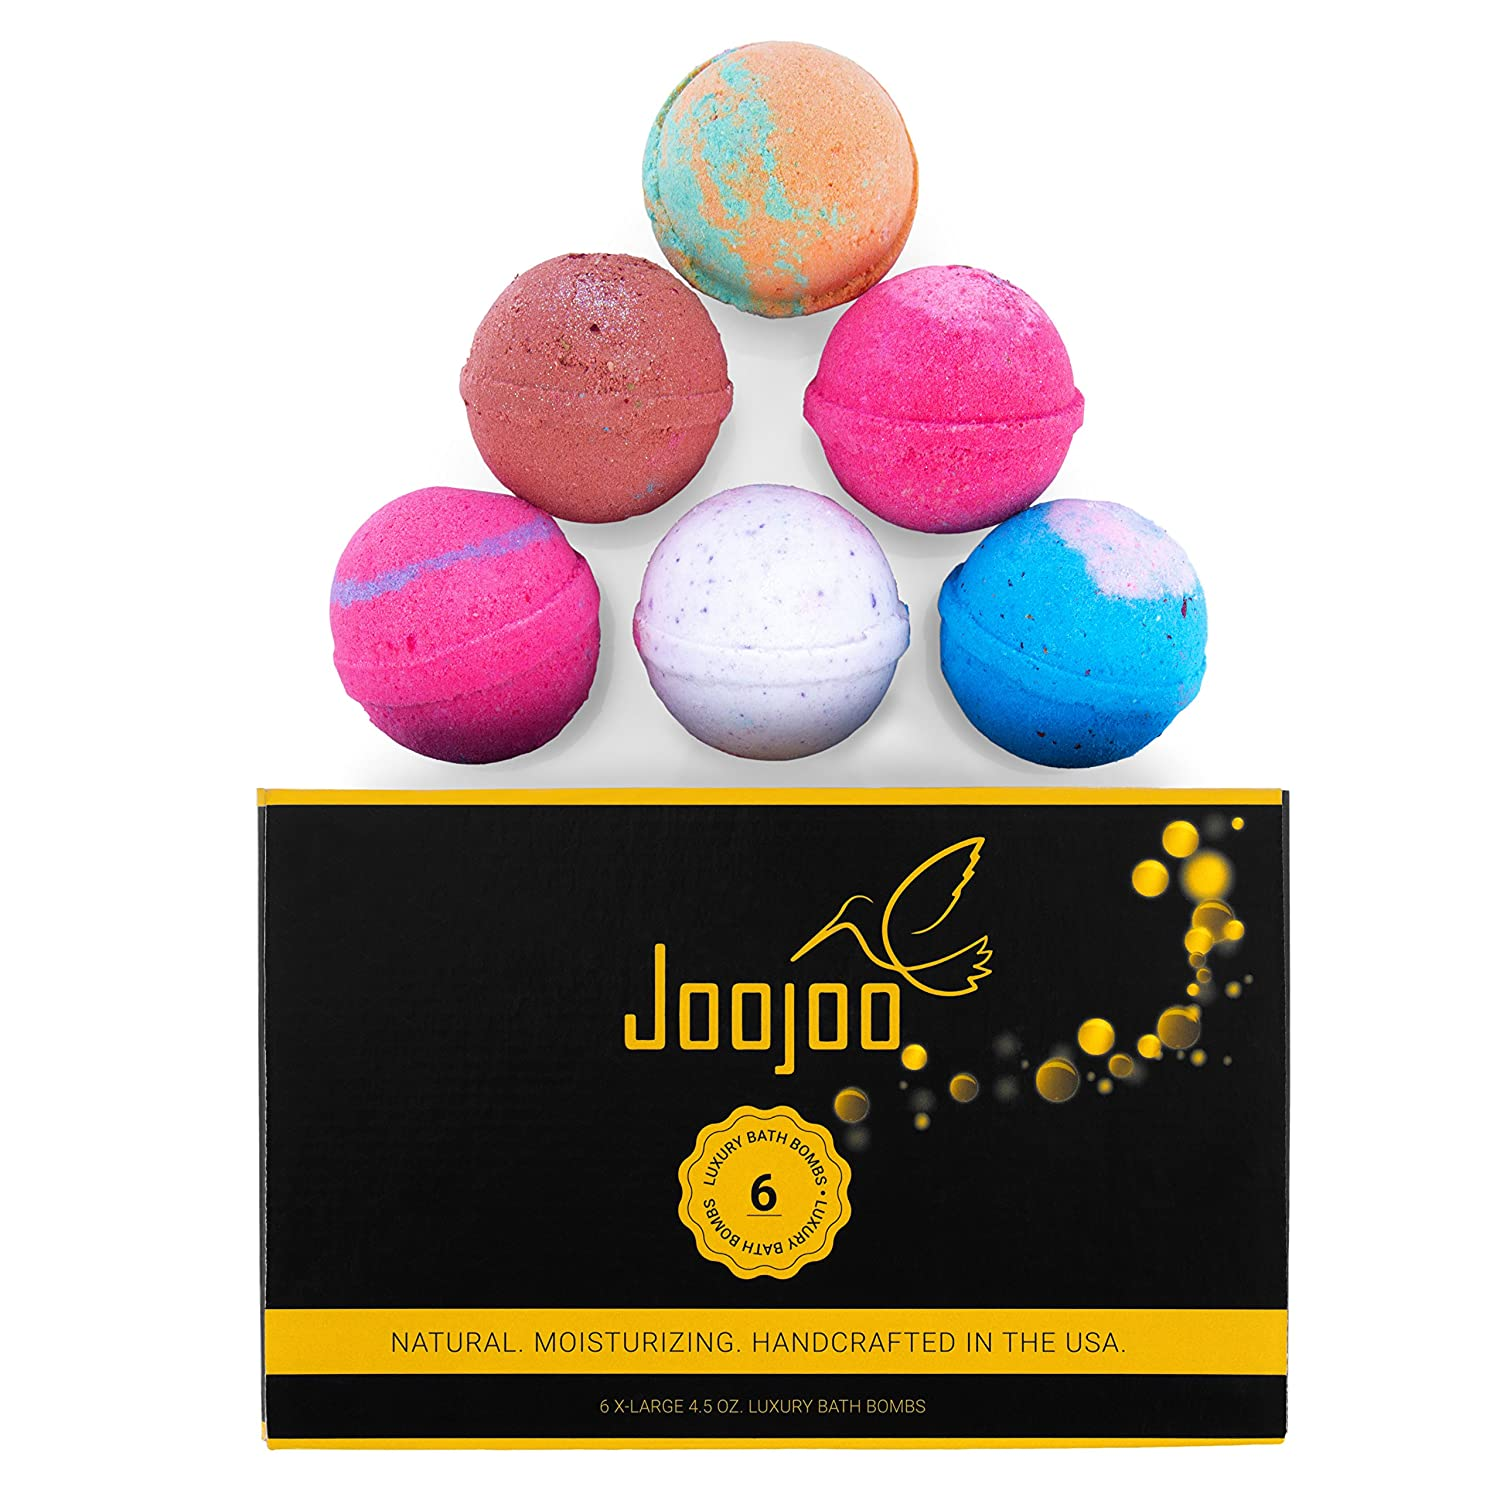 Joojoo Bath Bombs- SIX EXTRA LARGE 4.5 oz Ultra Lush Fizzy Bath Bombs Per Bath Bomb Kit-- Handmade In USA - Lavender, Moonlight & Roses, Cucumber Melon, Crazy Love, Petal Dance, Kiss Me Jence Life